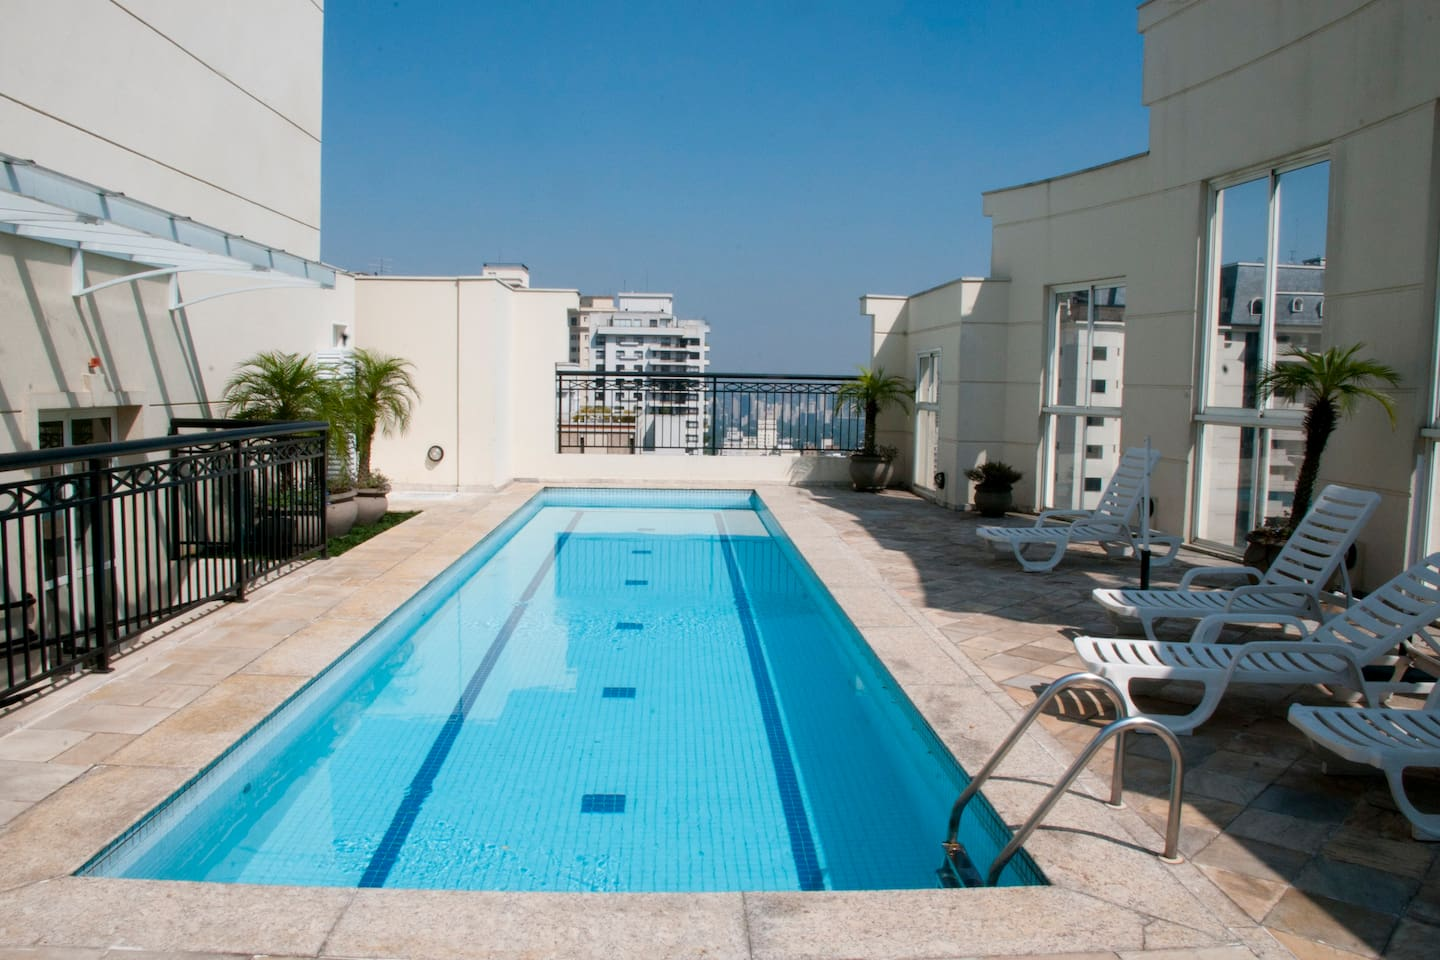 A-1 HI-TECH LUXURY APT/ FLAT - PAULISTA AVE., JARDINS - Next to Paulista Ave on Jardins (Manhattan/ Soho) side.  Rooftop pool with breathtaking views.  Lightening ultra speedy 250 Mbps fiber optic internet wi-fi connection for business or personal use.